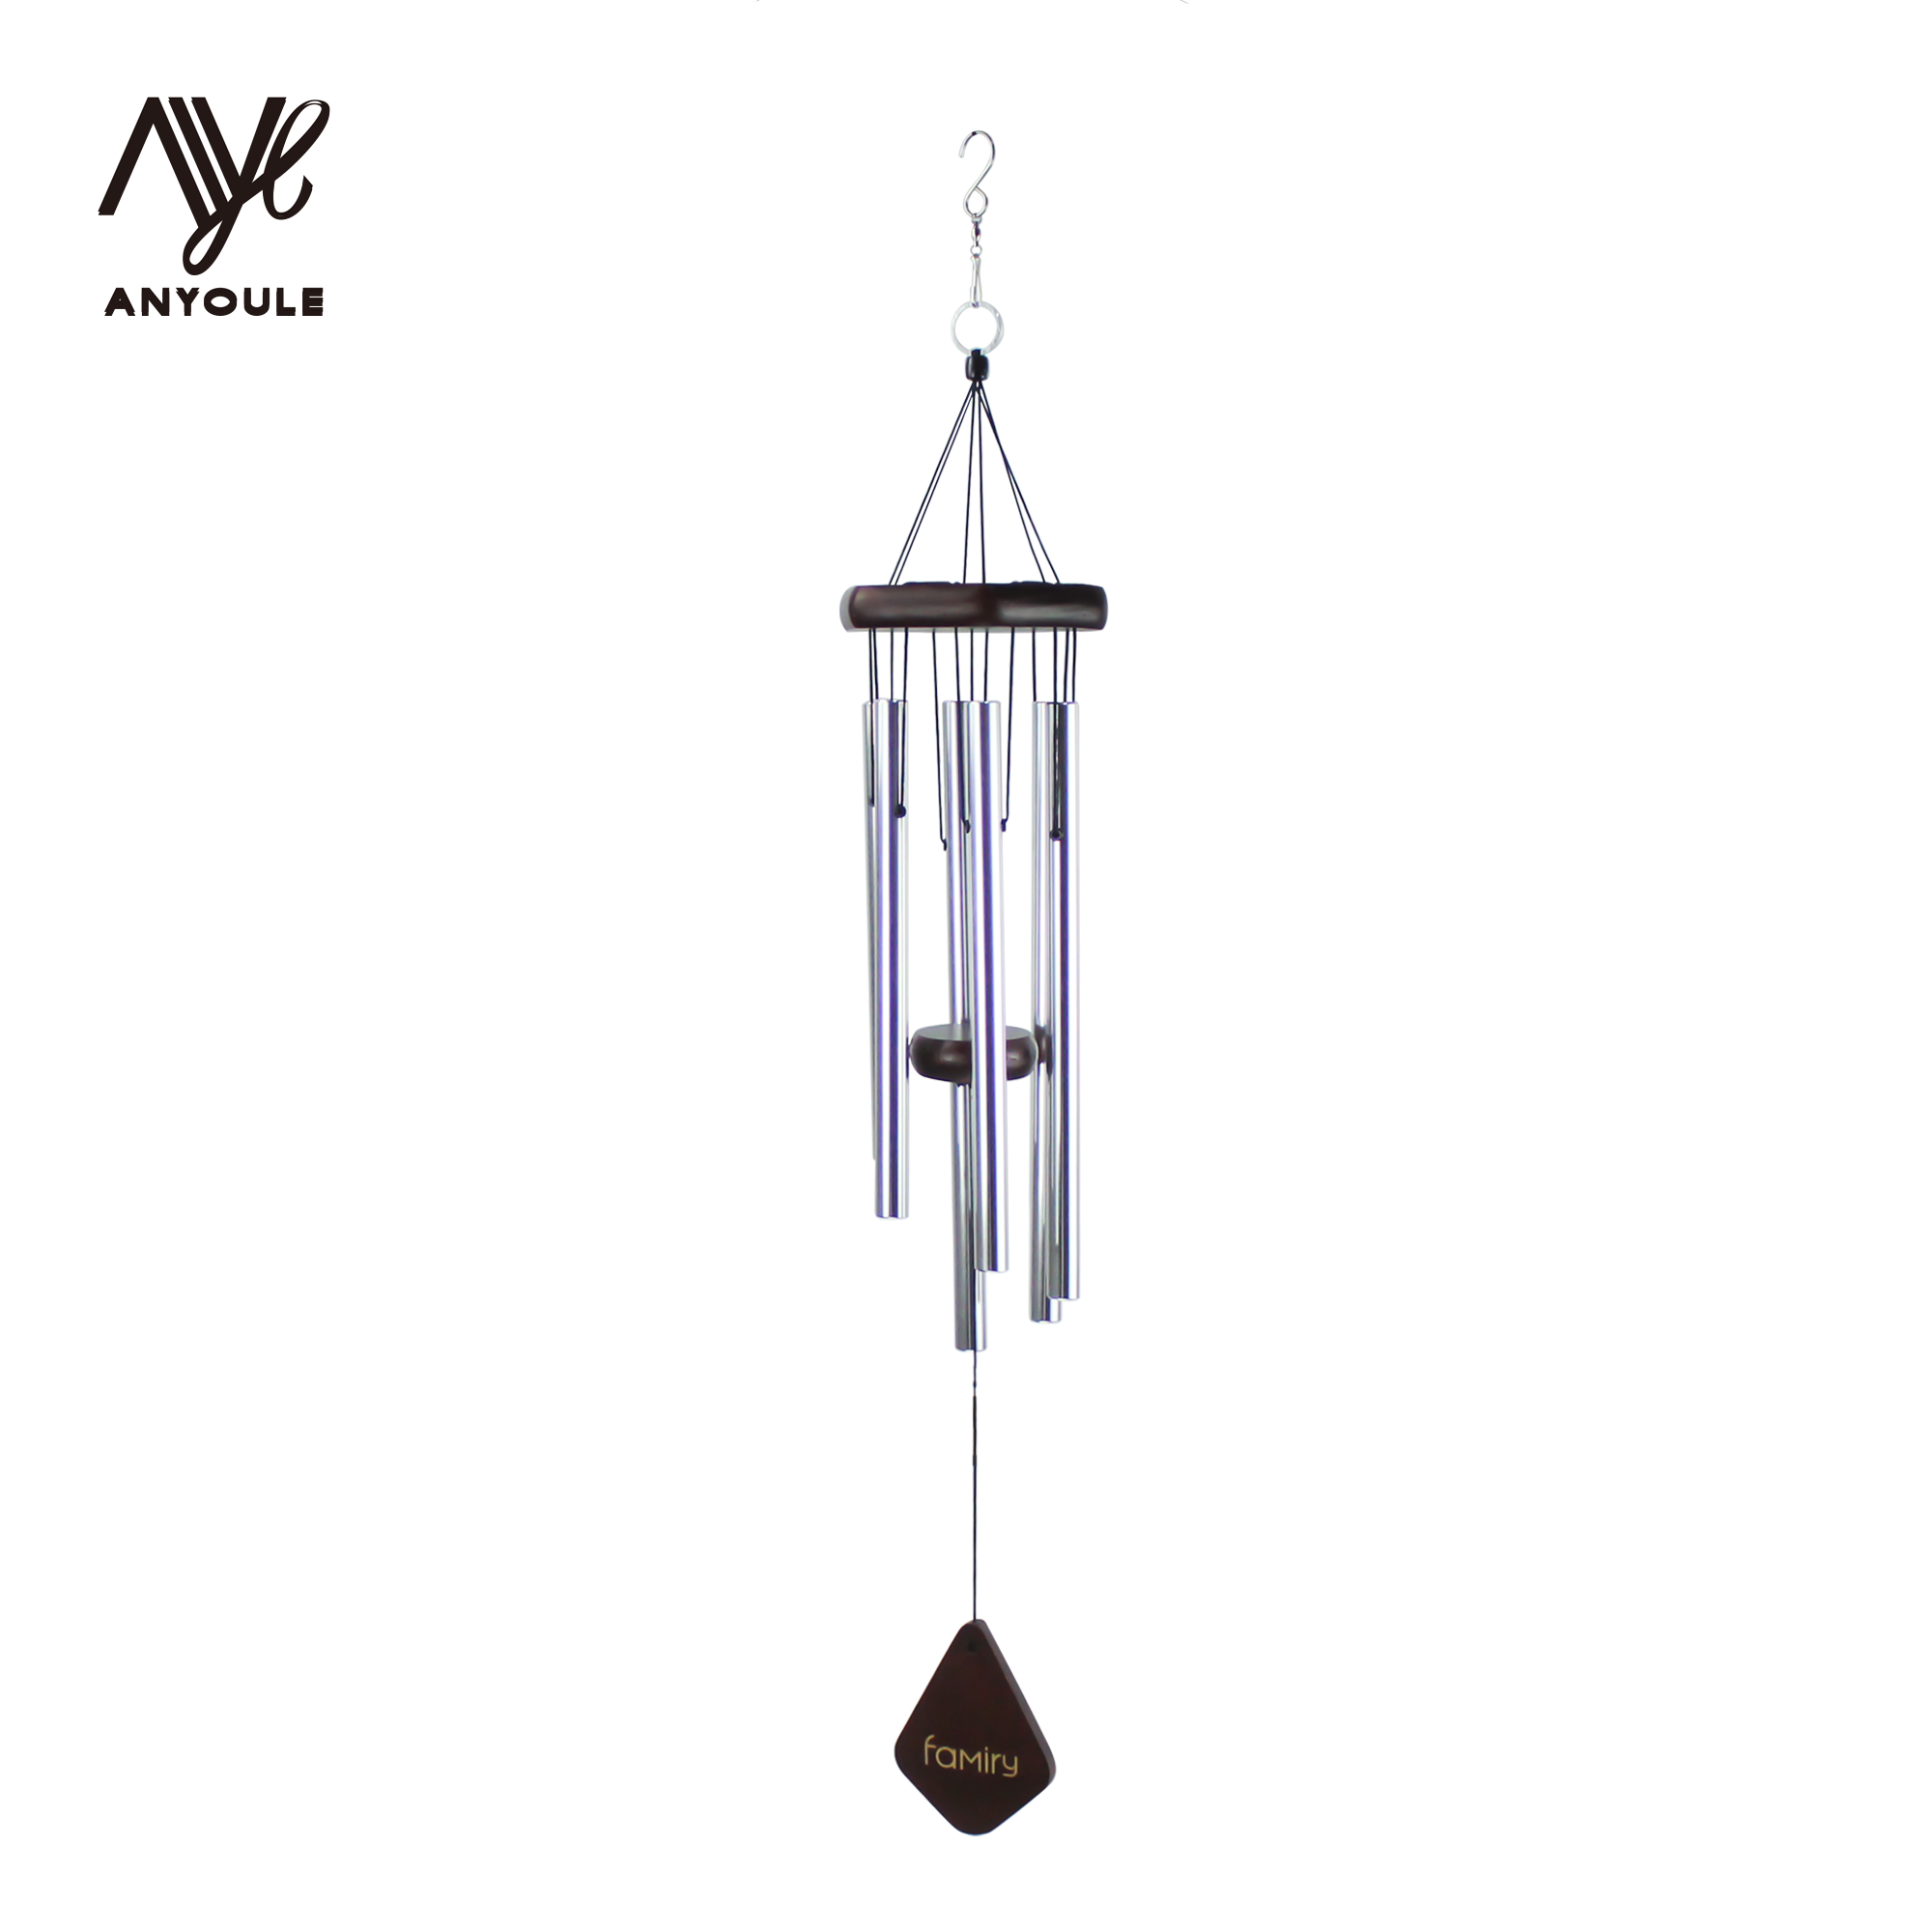 Metal Tube Garden engel Music Wind Chimes mit haken indoor und outdoor